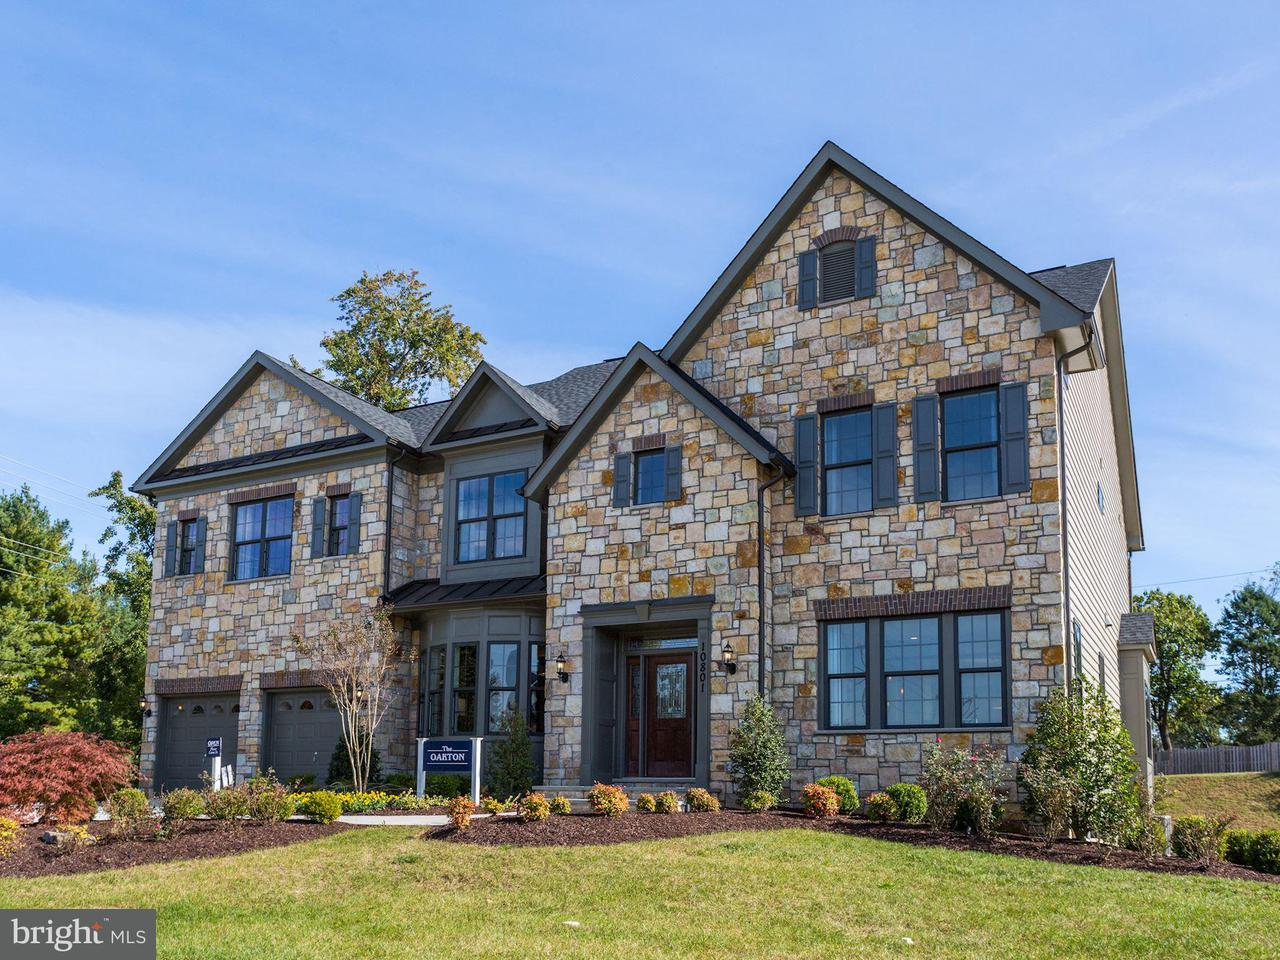 Single Family Home for Sale at 10801 Rockland Drive 10801 Rockland Drive Laurel, Maryland 20723 United States